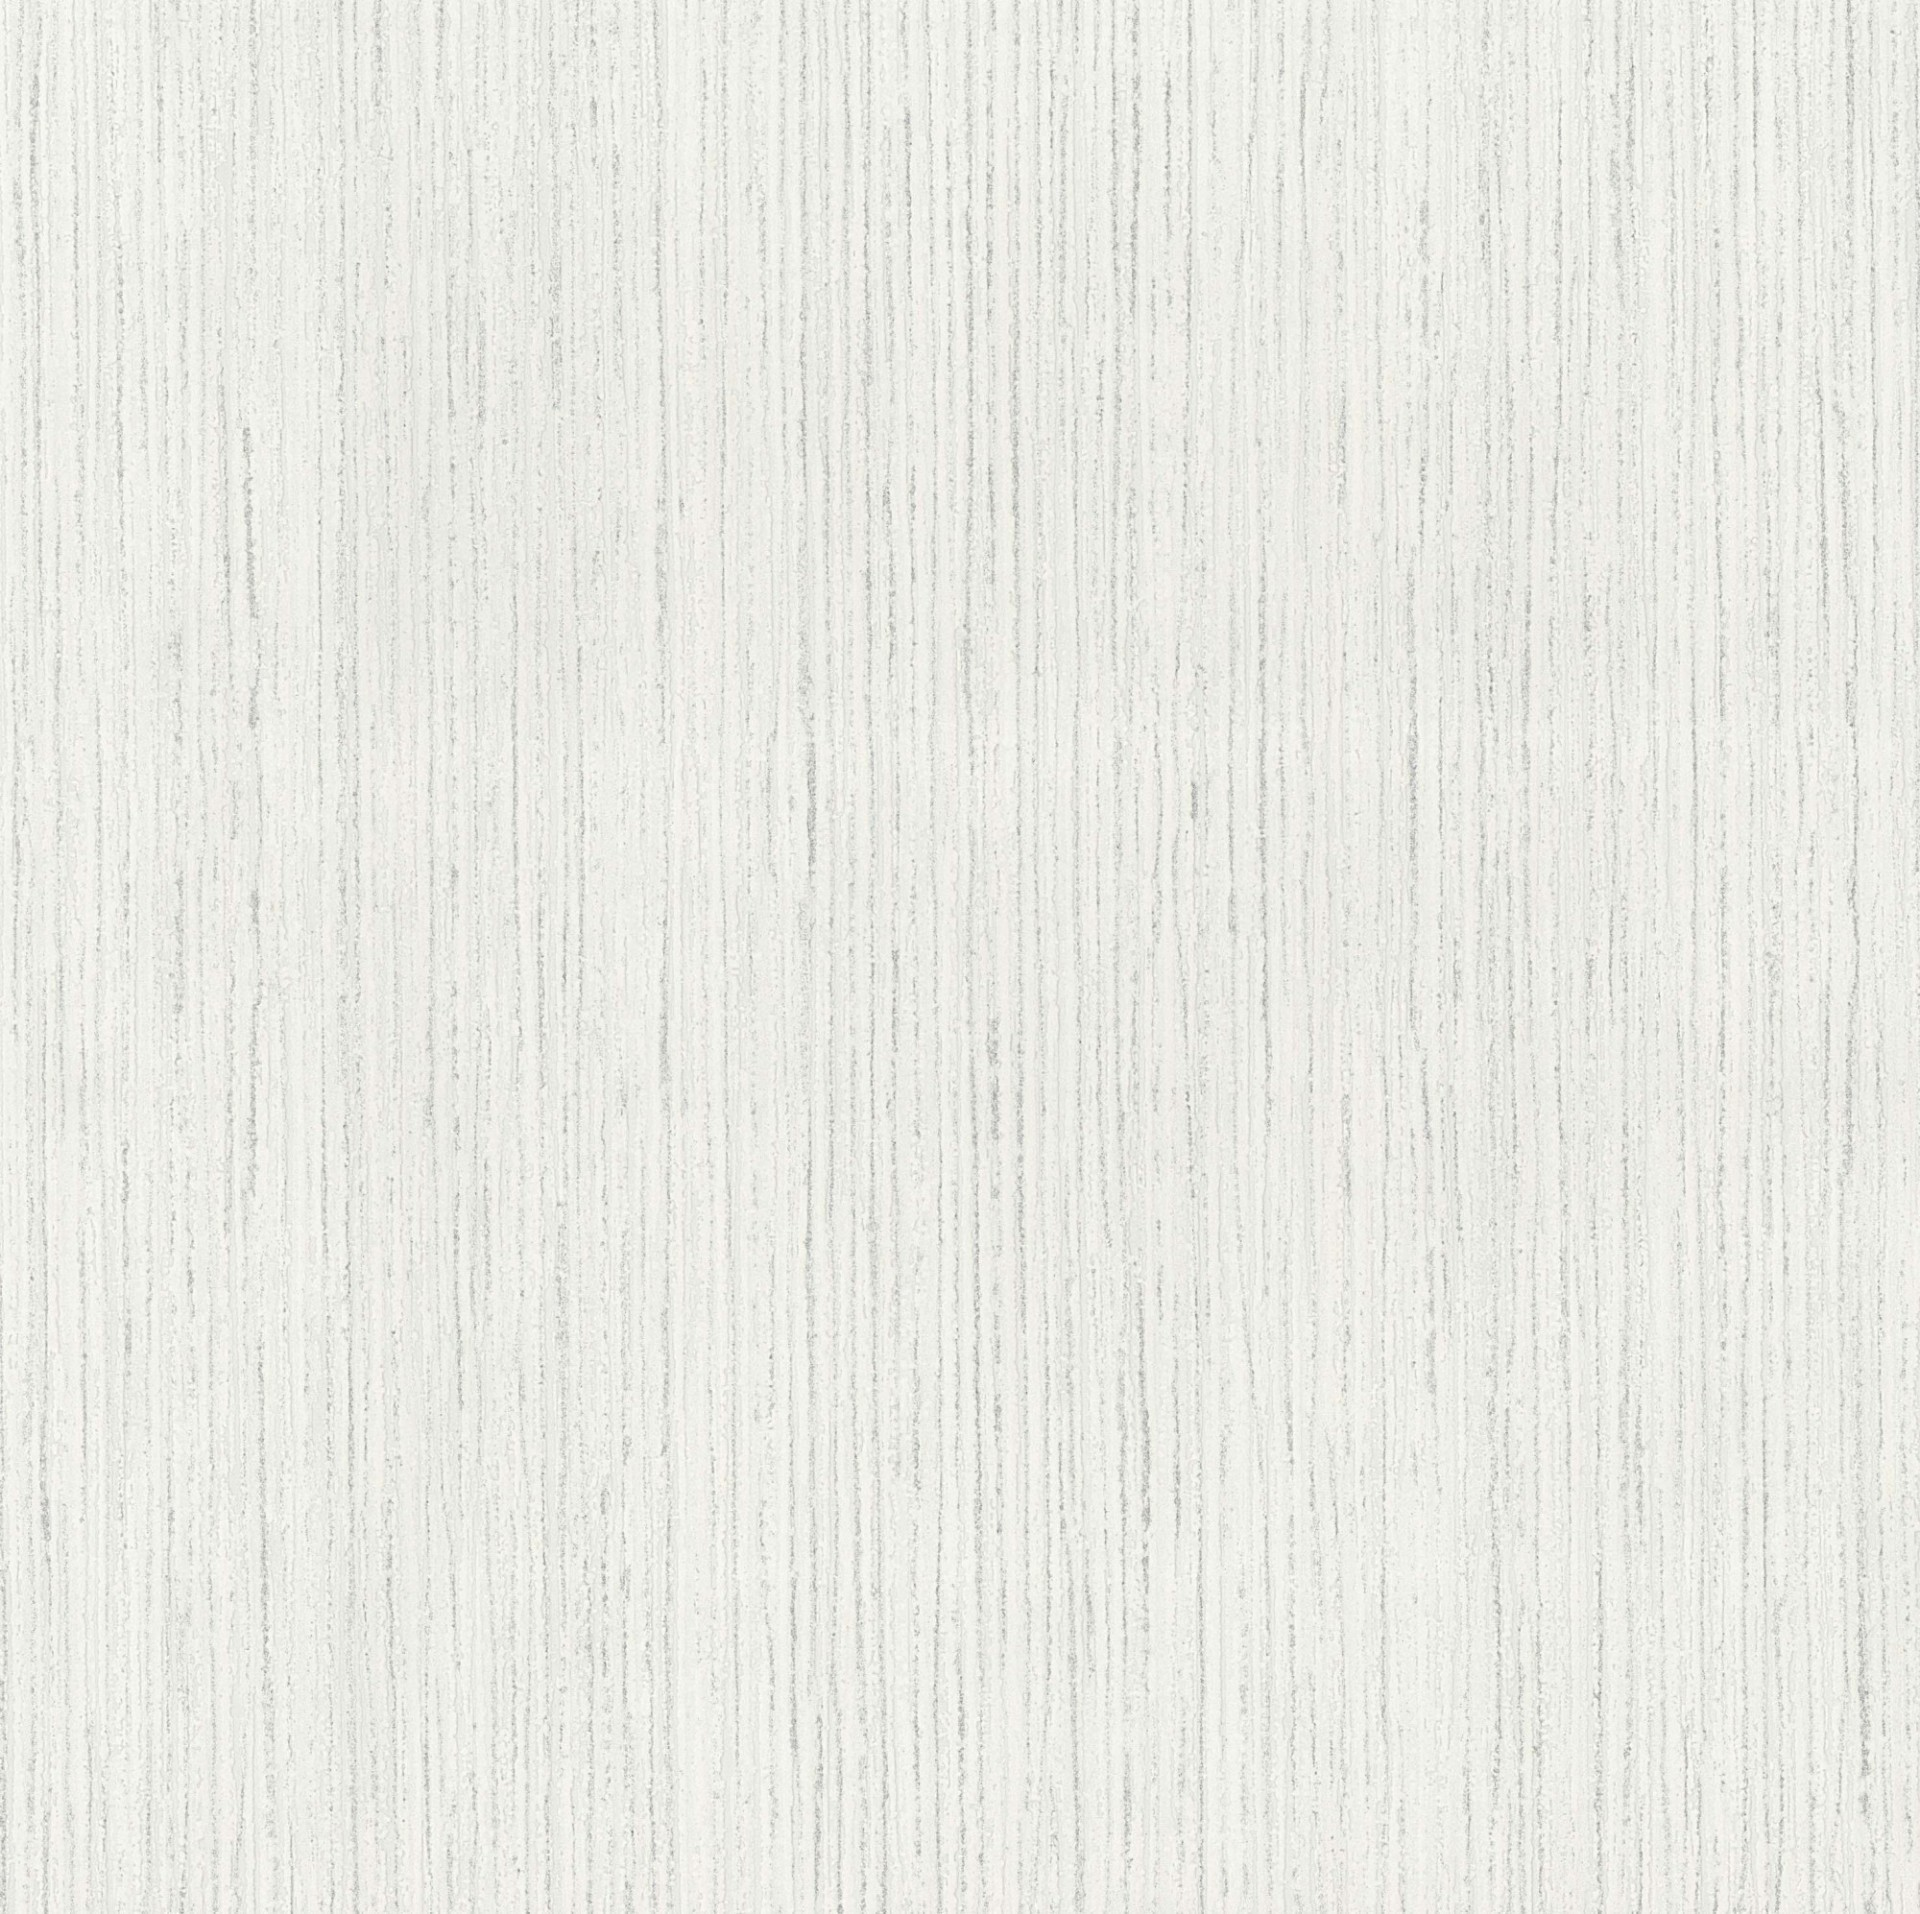 birch texture images reverse search